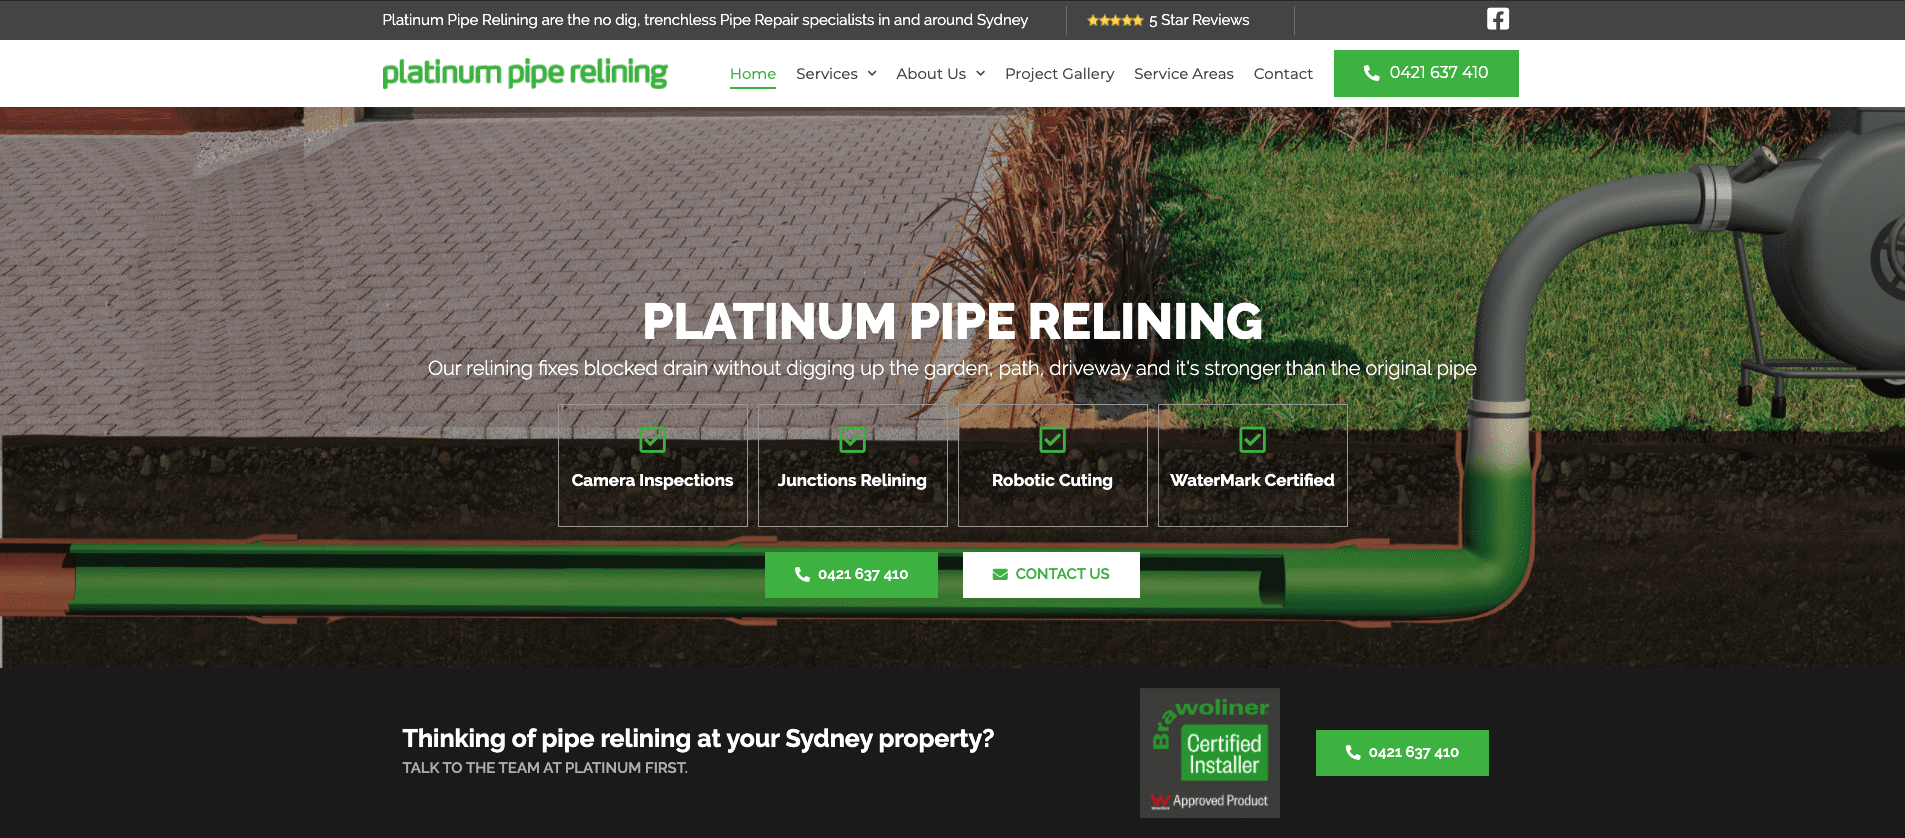 Platinum Pipe Relining Websites Homepage - Project Gallery